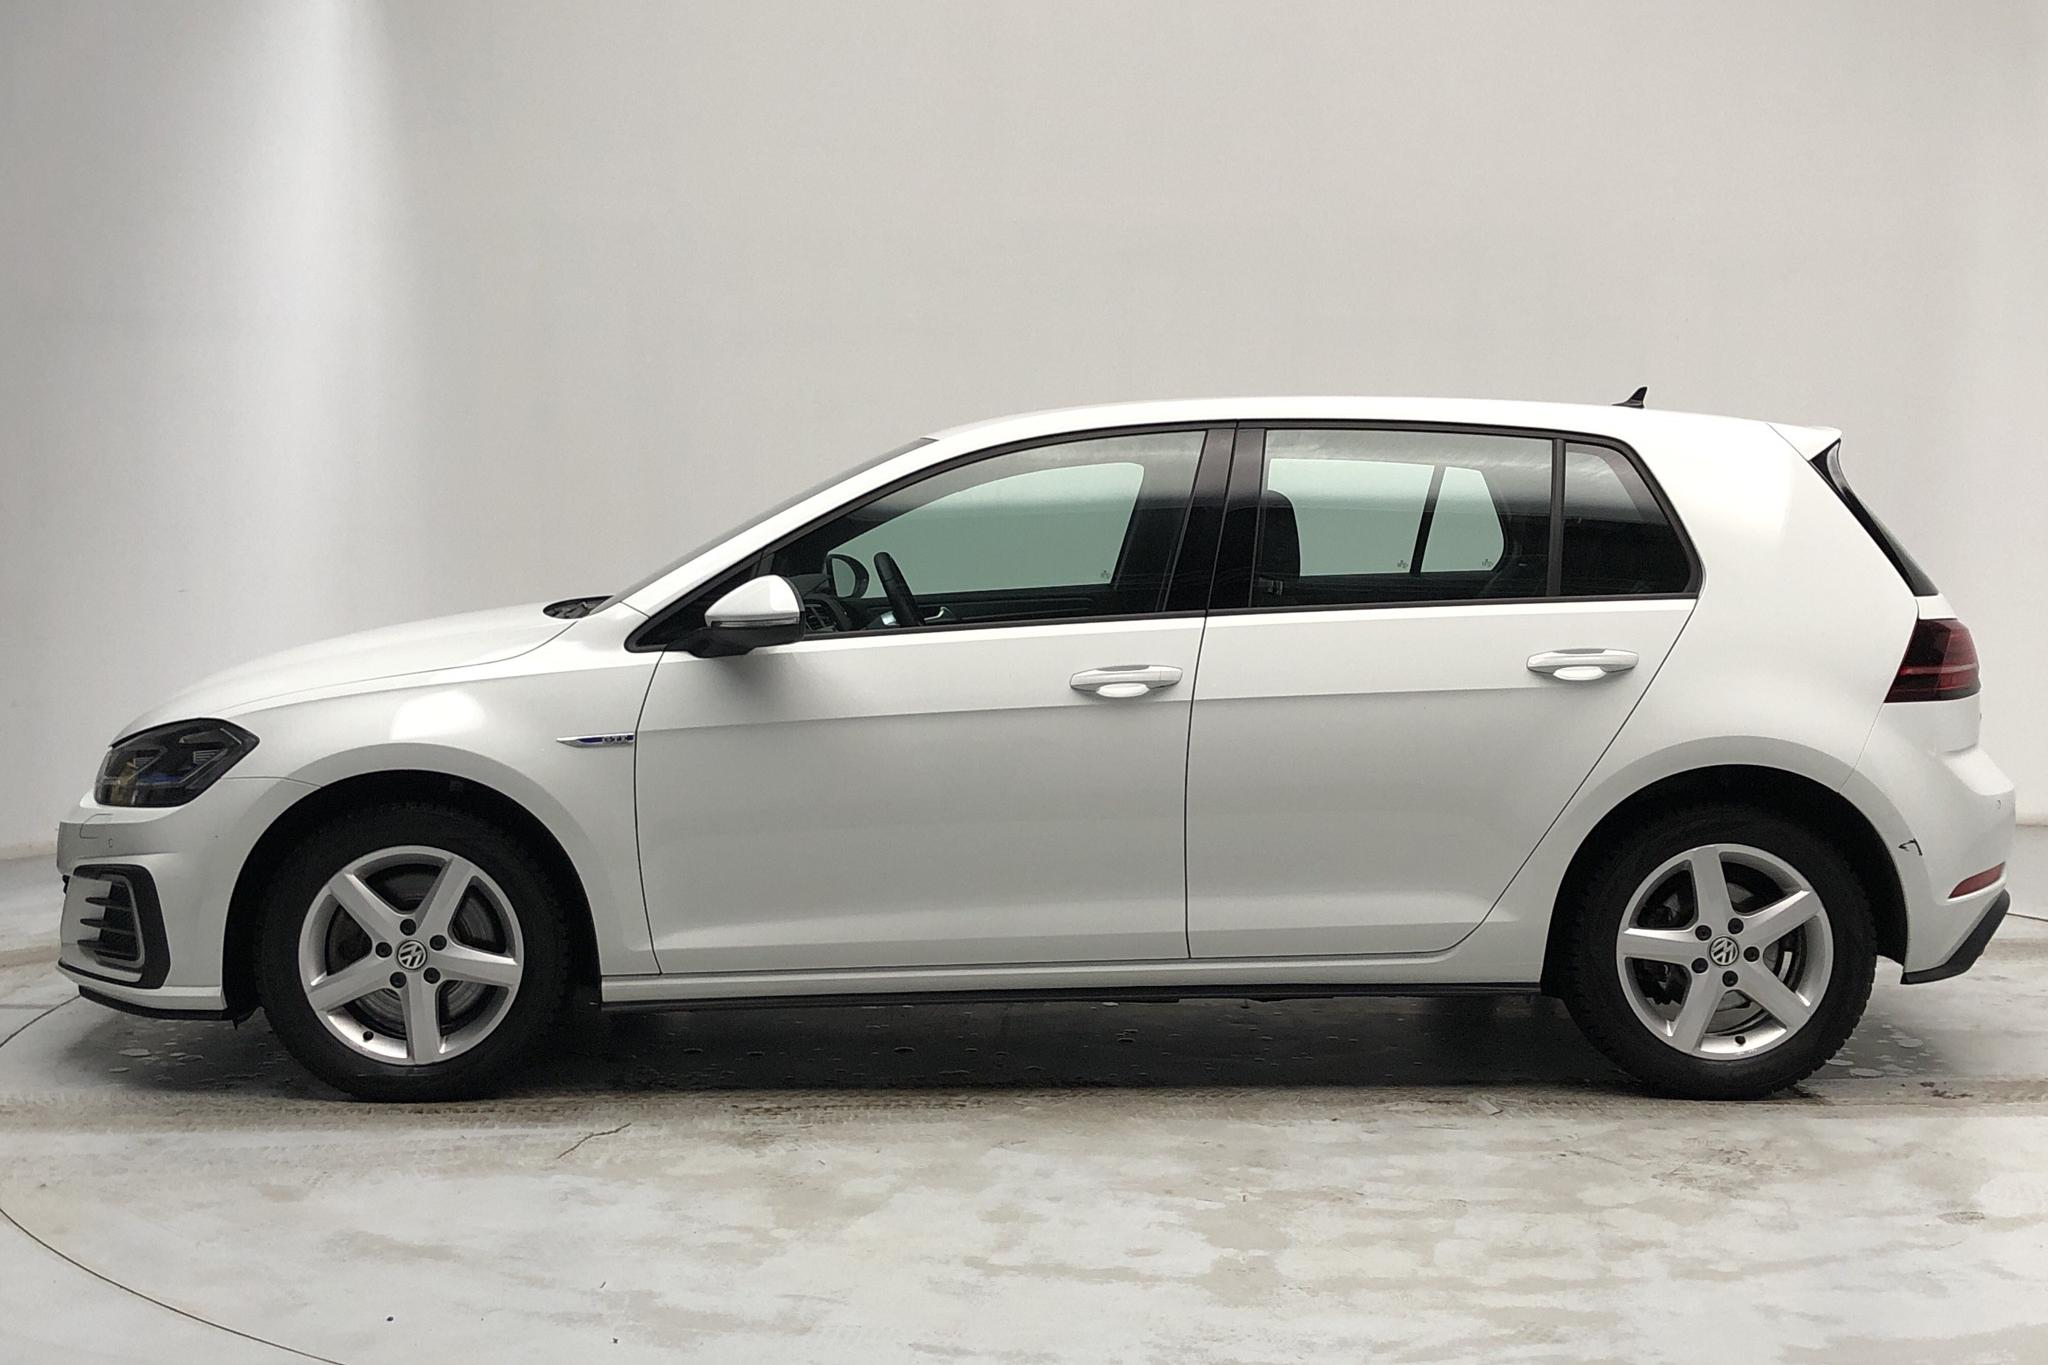 VW Golf VII GTE 5dr (204hk) - 16 430 km - Automatic - white - 2018